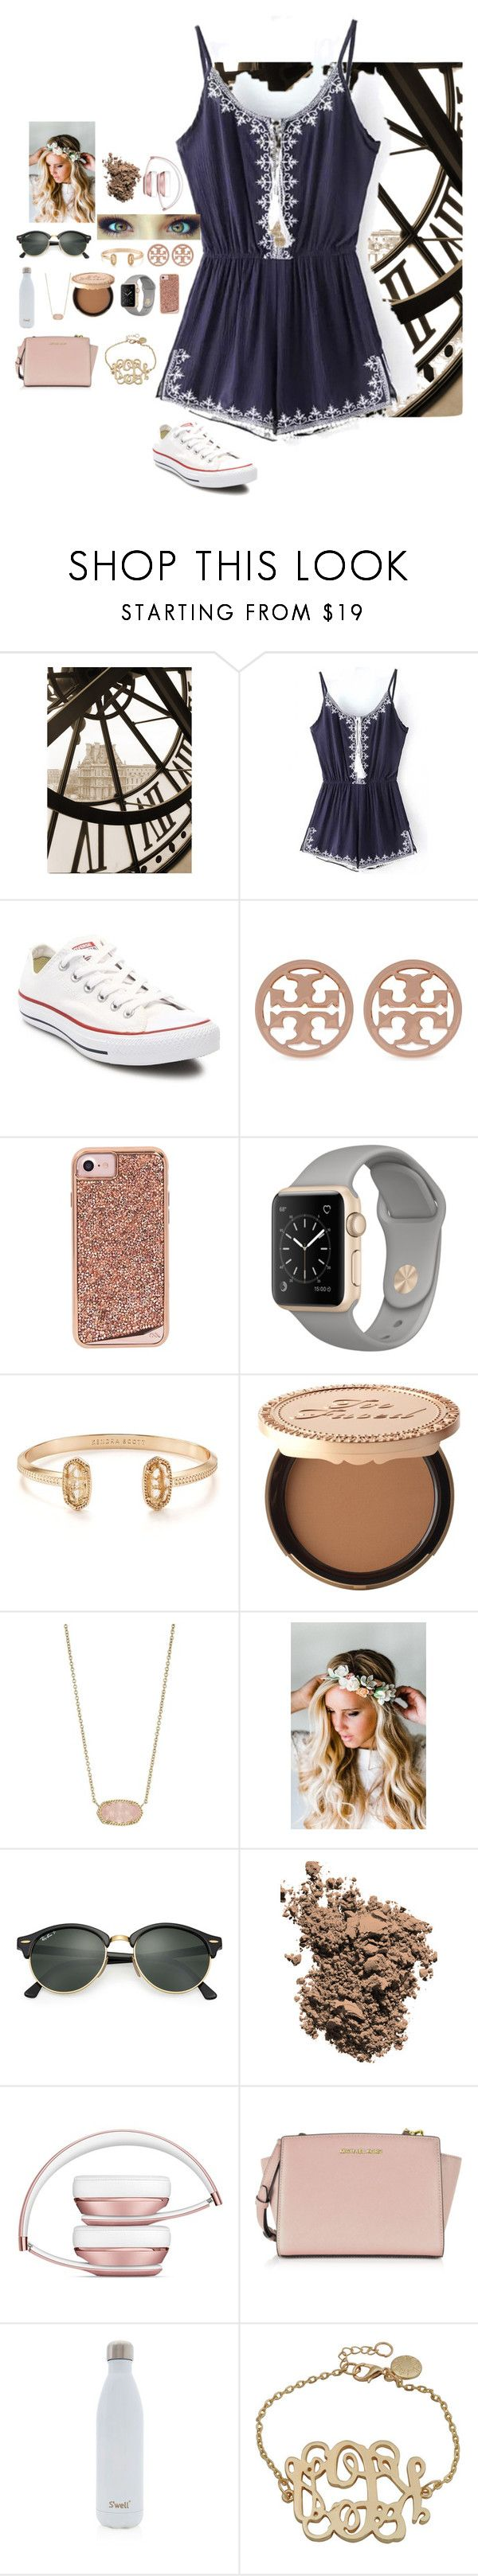 """••"" by mackenzielacy814 ❤ liked on Polyvore featuring Converse, Tory Burch, Case-Mate, Kendra Scott, Too Faced Cosmetics, Emily Rose Flower Crowns, Ray-Ban, Dolce&Gabbana, Michael Kors and S'well"